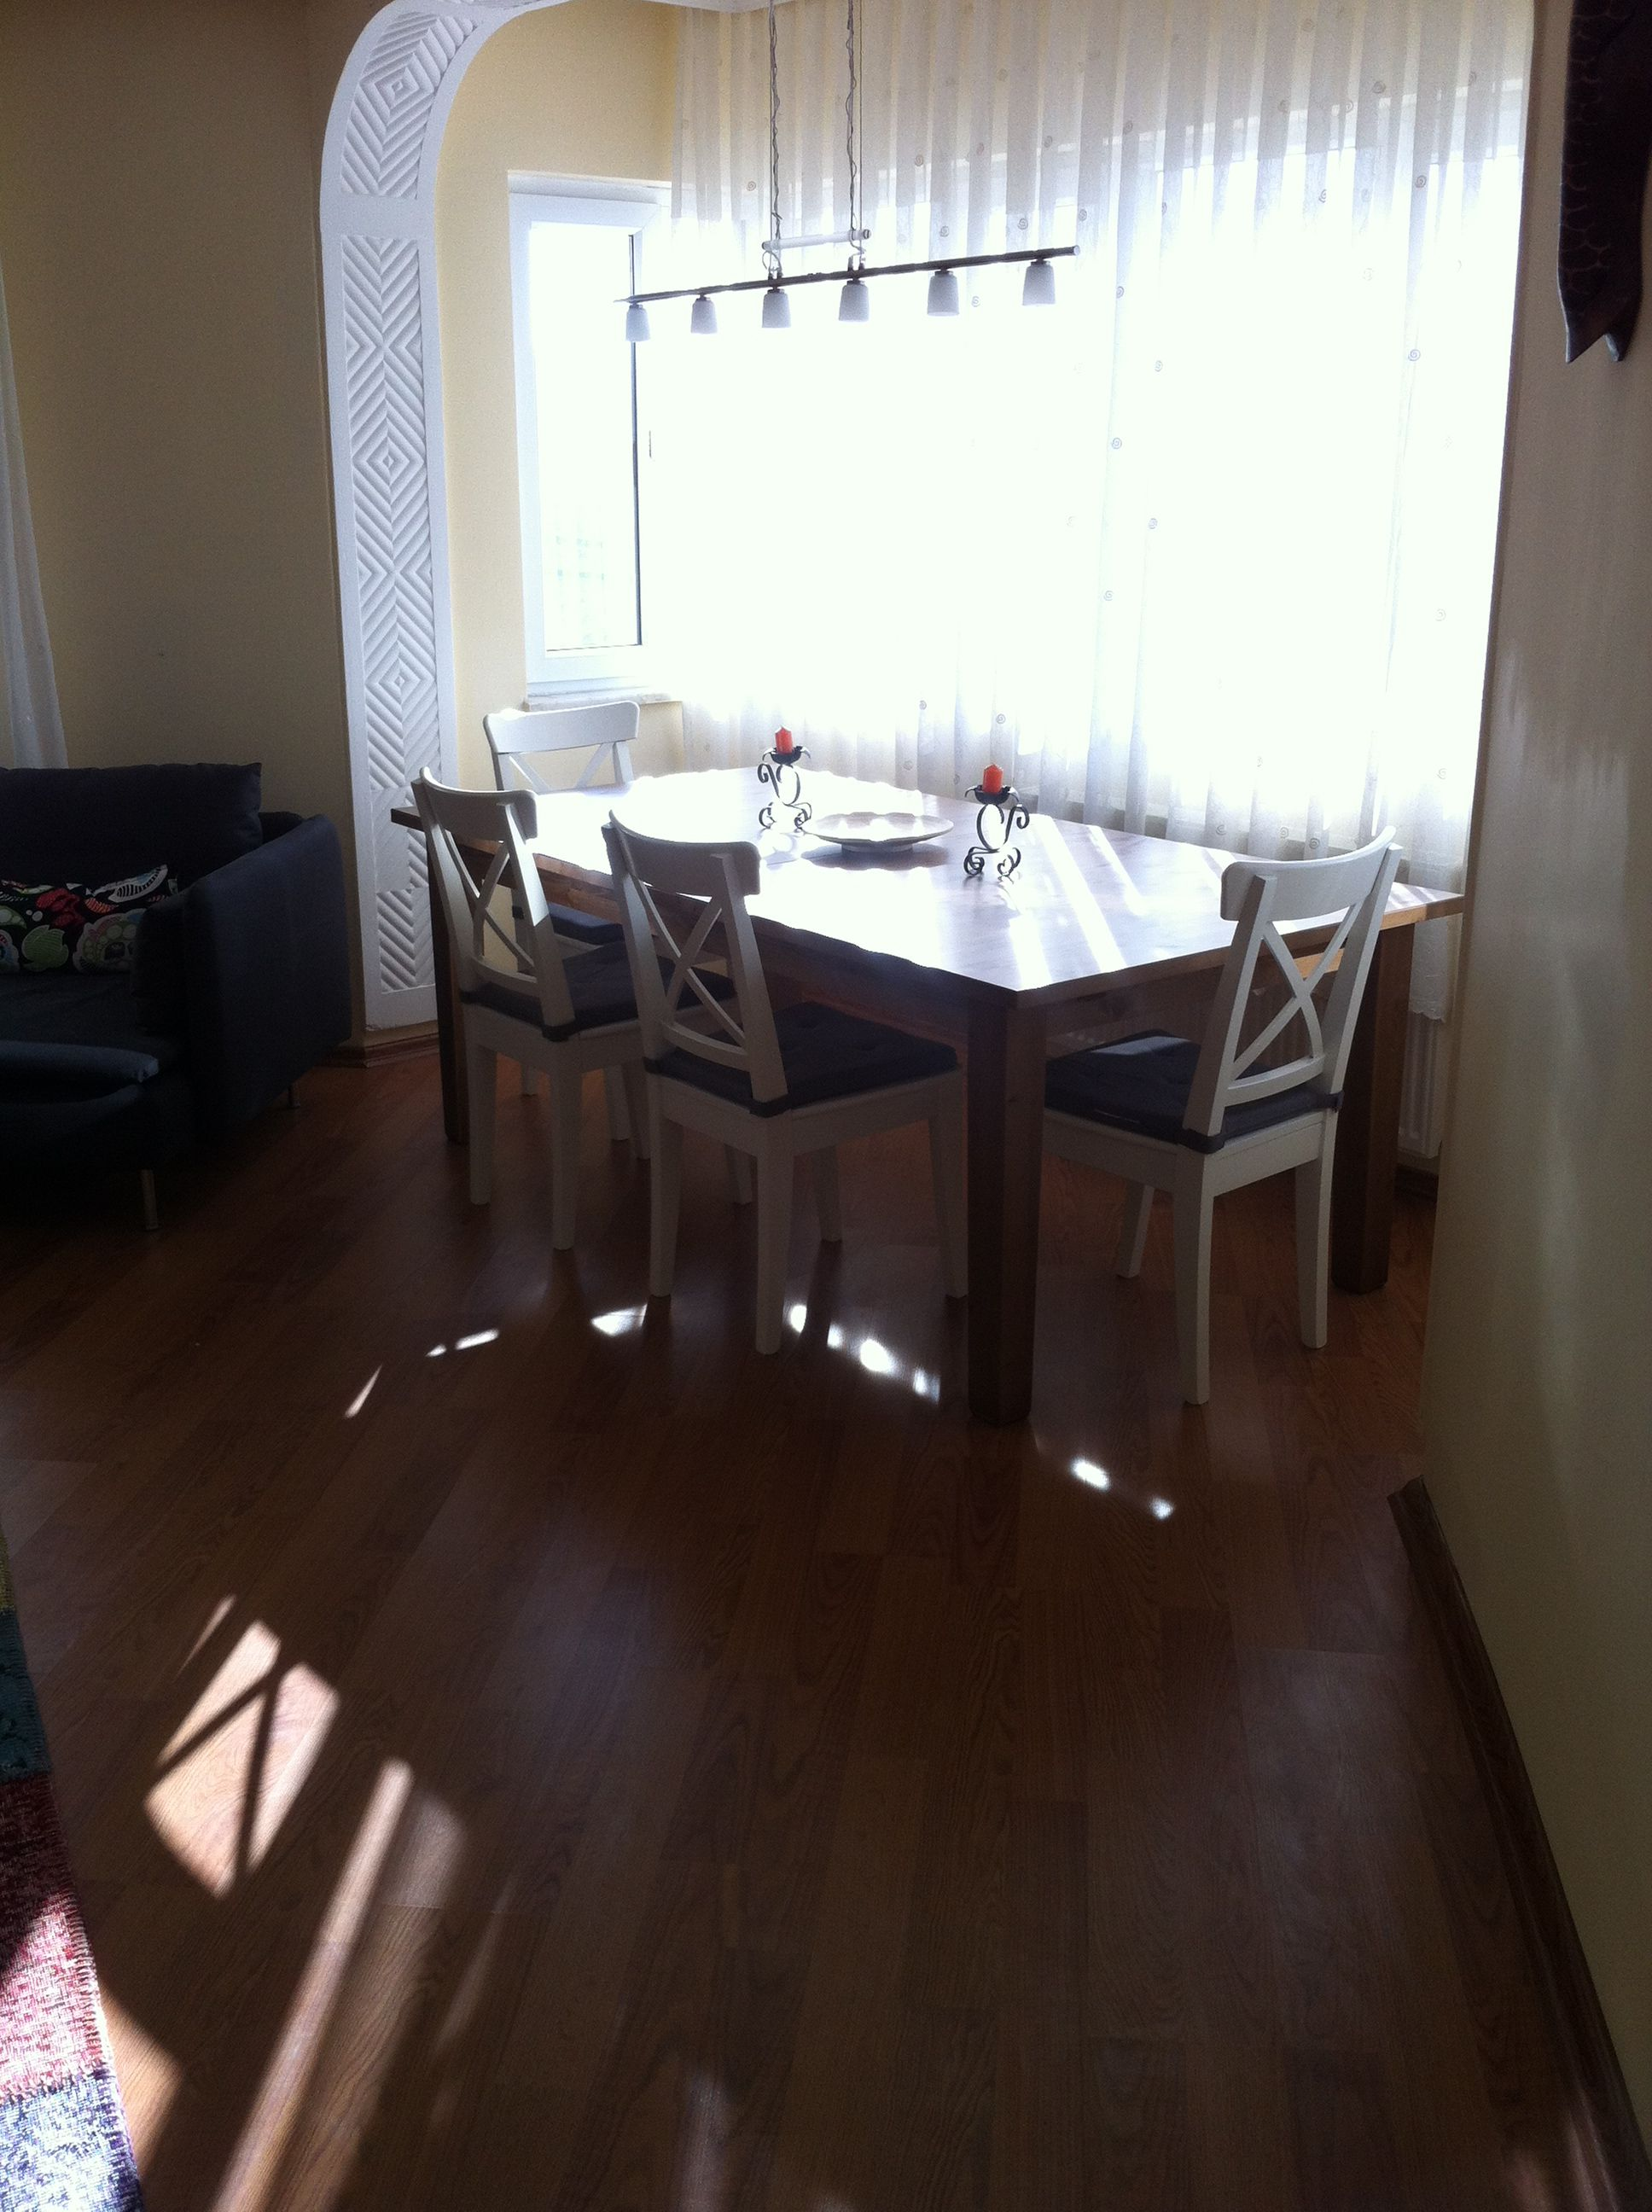 Ikea Stornas Table And Ingolf Chairs Home Decor Table